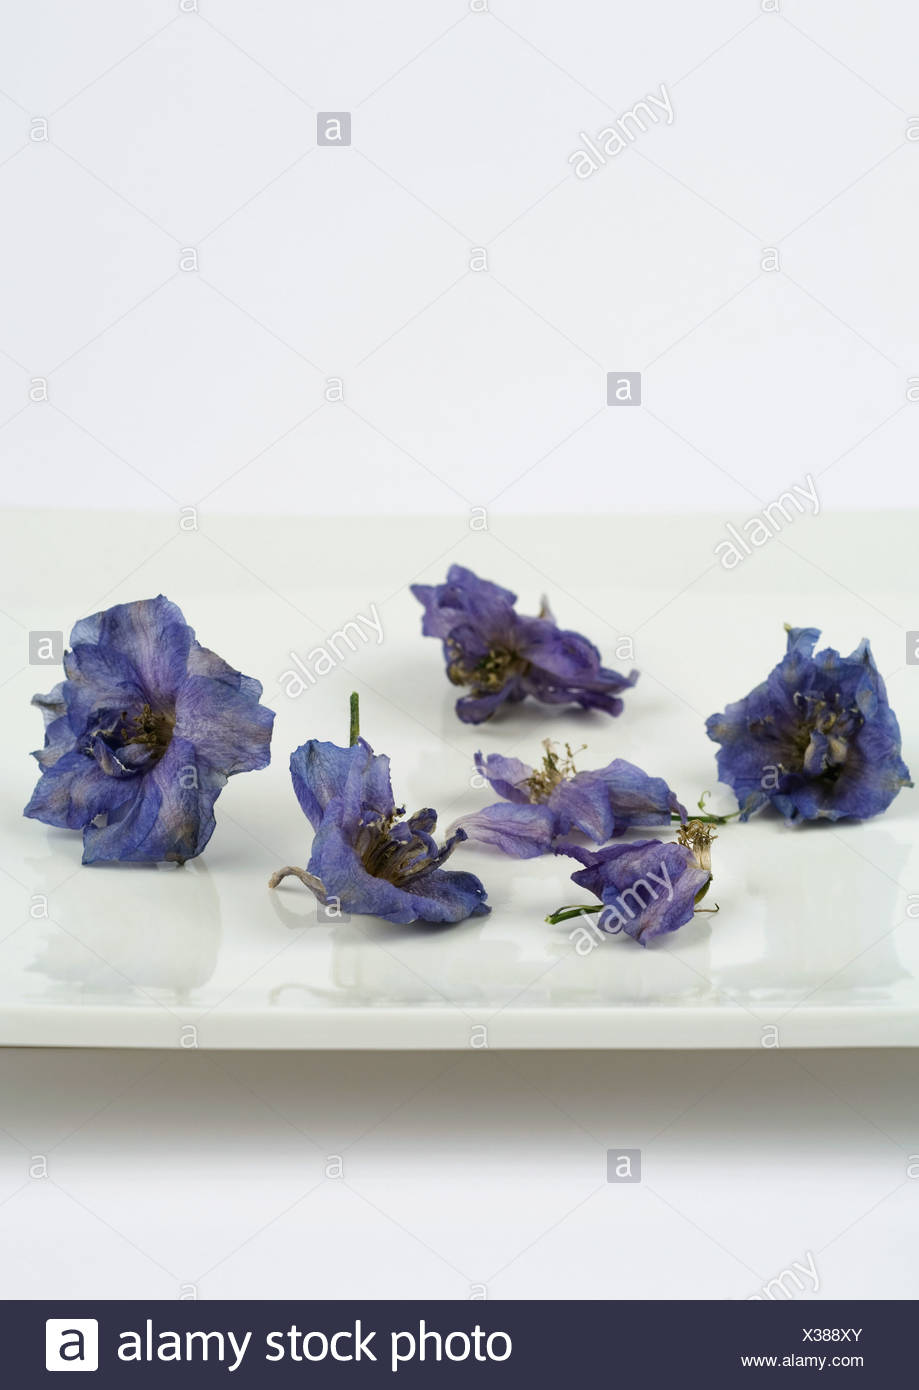 Dried flowers in square dish - Stock Image